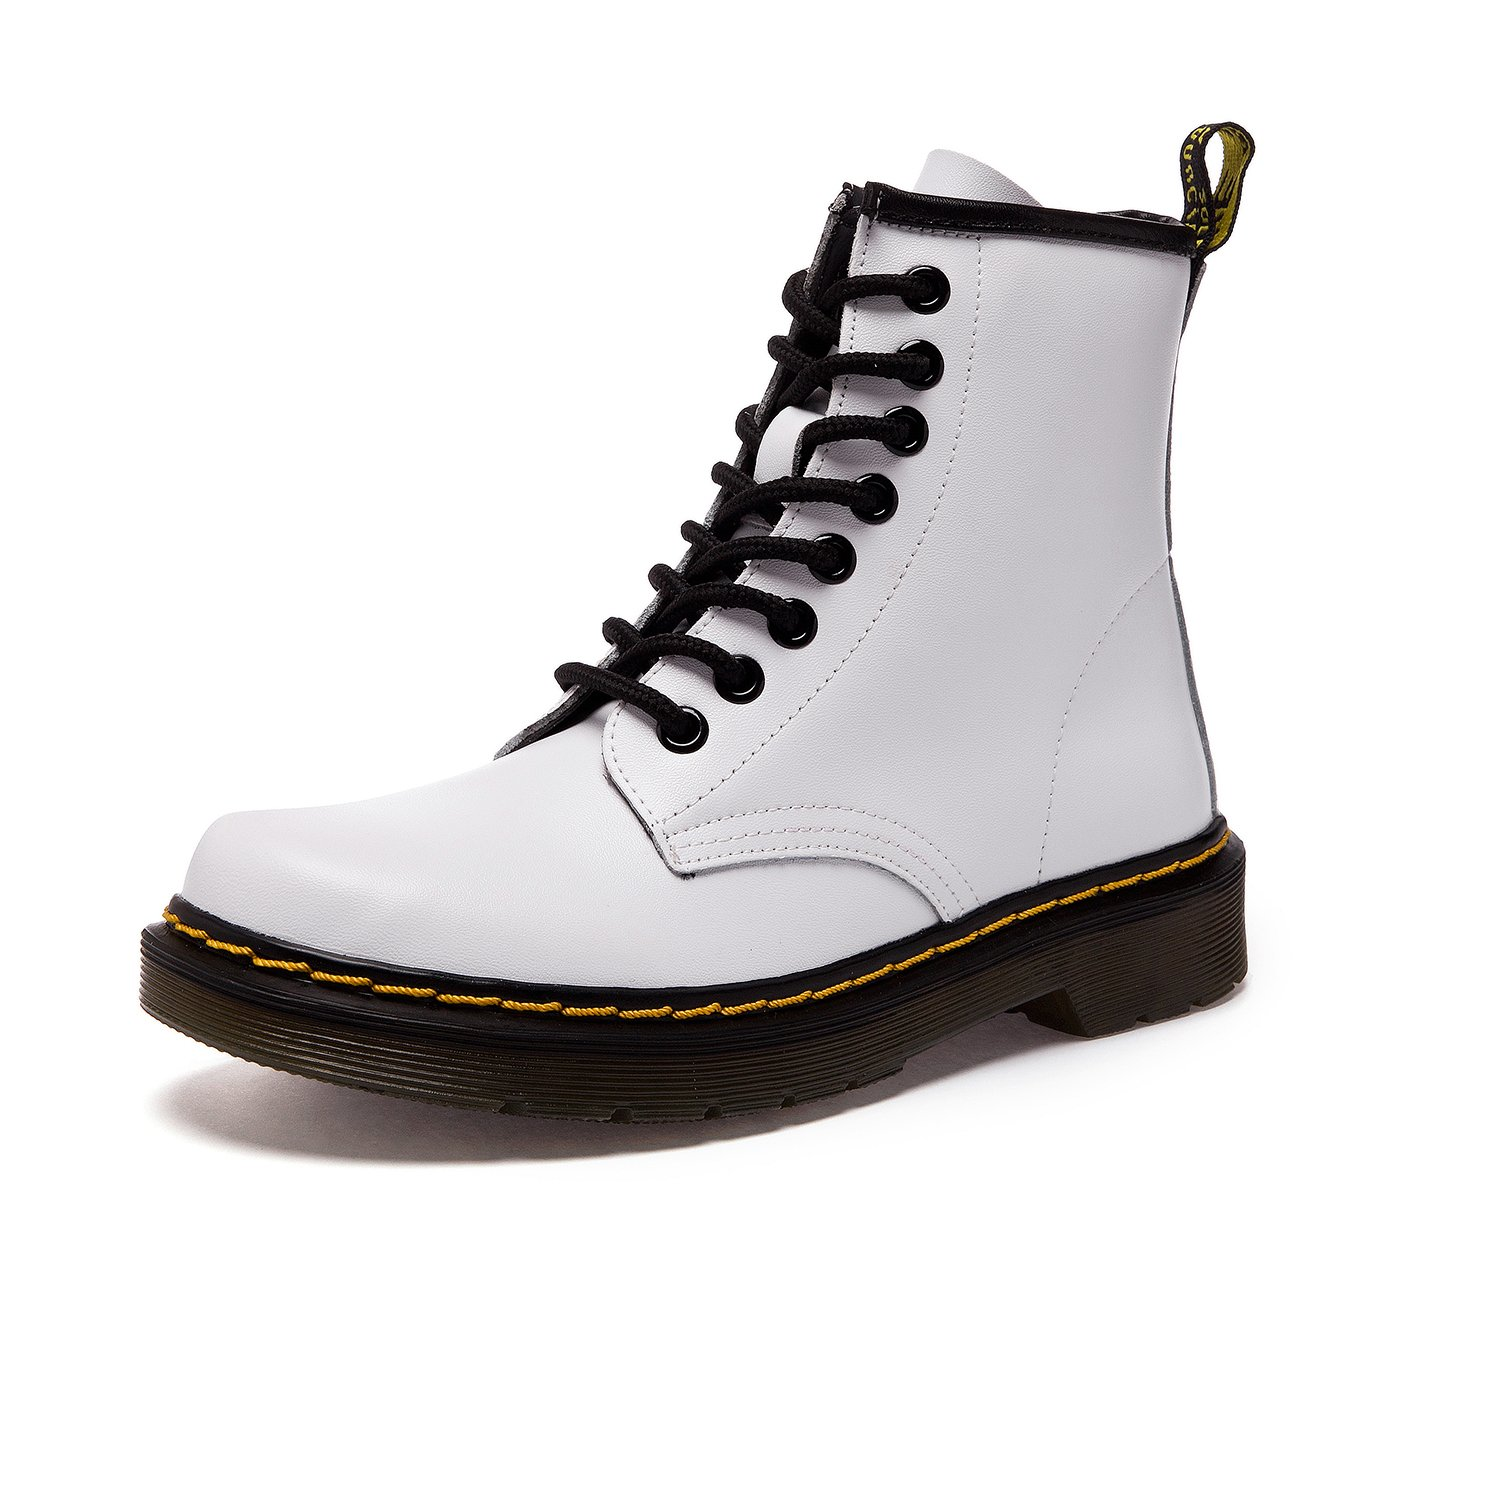 Resonda Women Fashion Leather Ankle Bootie Casual Lace up Short Combat Boots for Winter,White,US 10